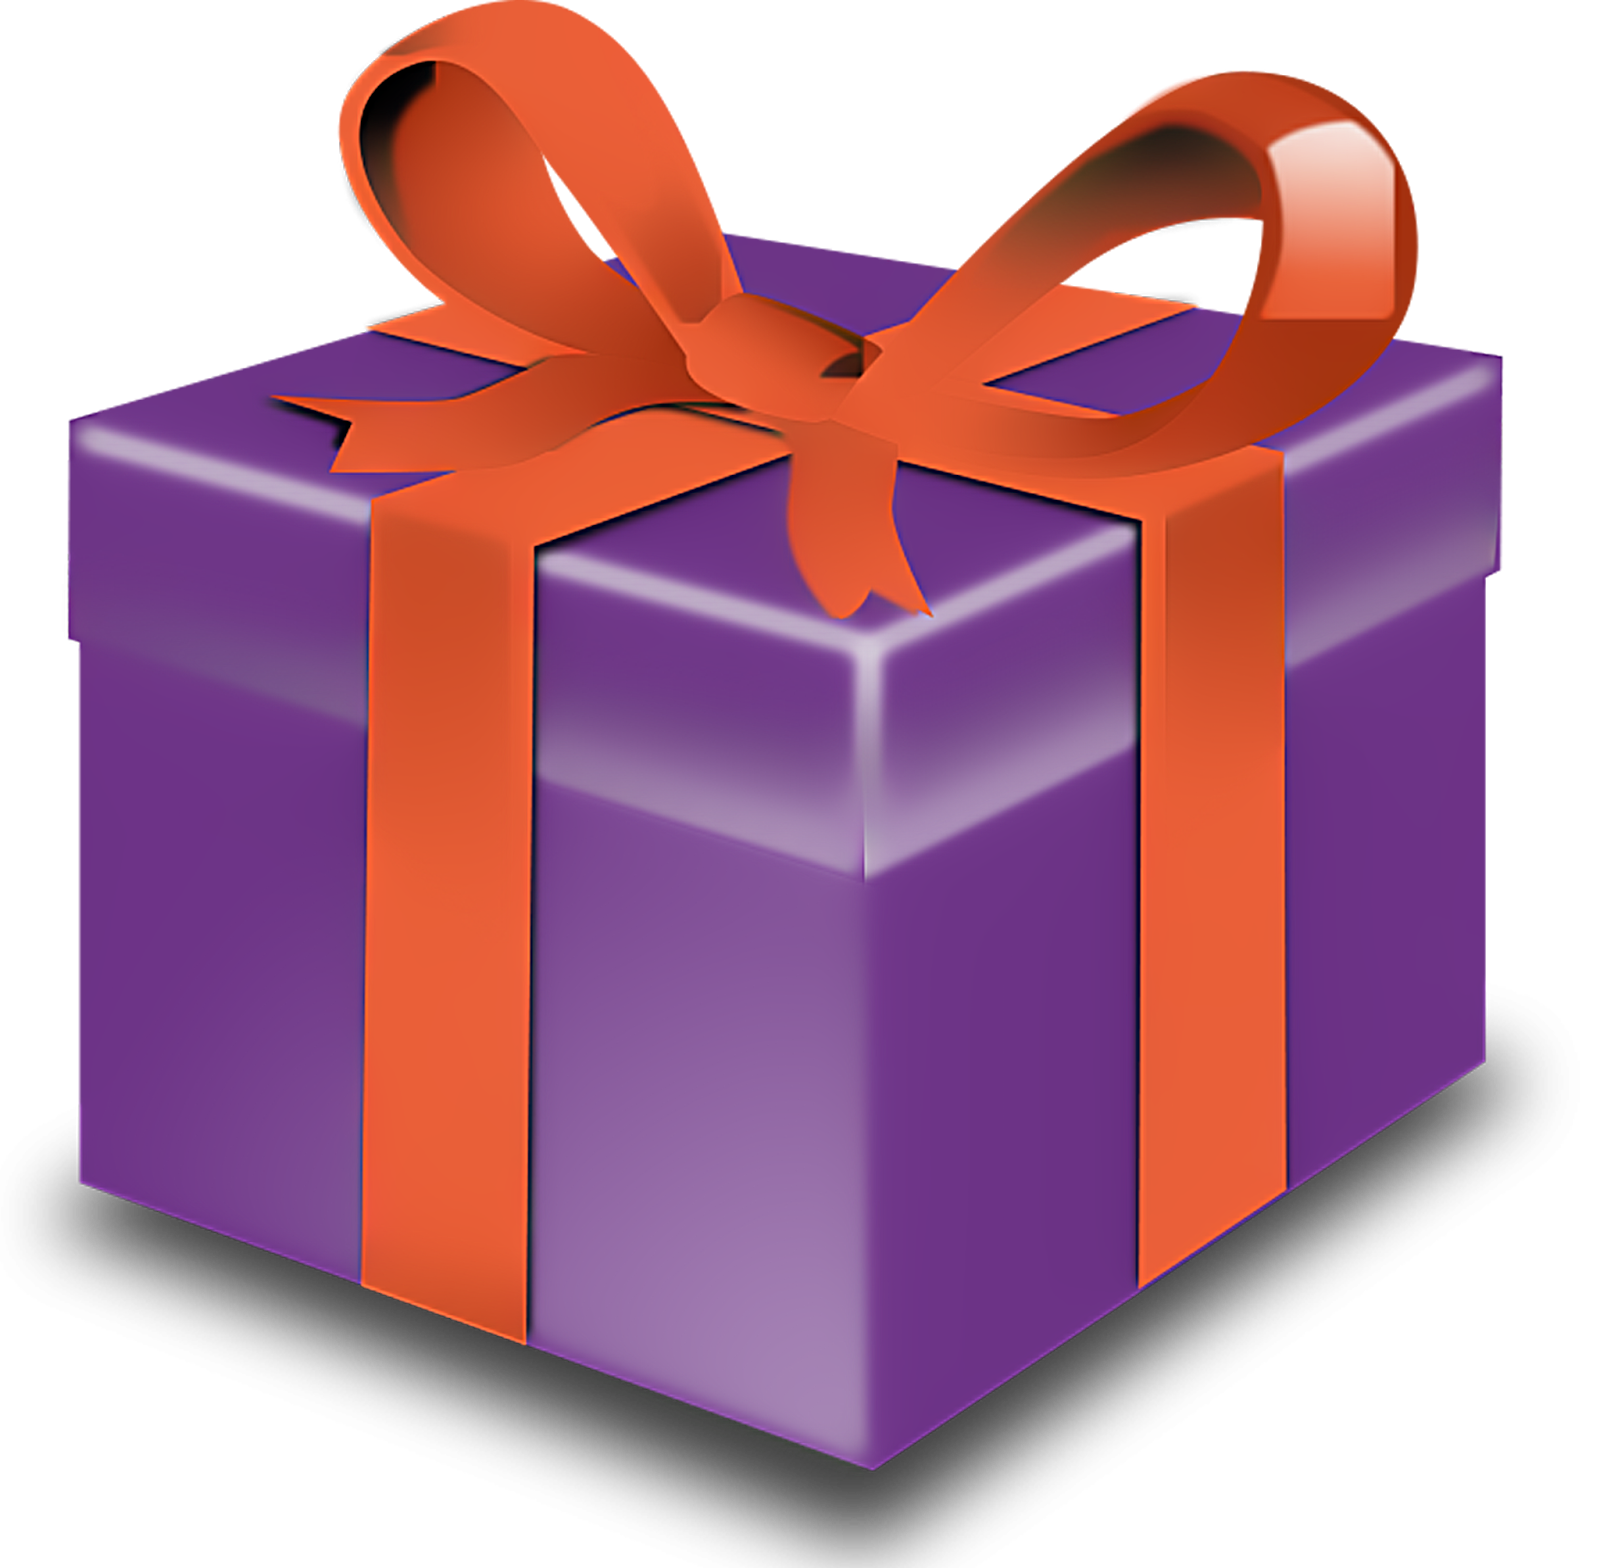 Gift clipart presant. Present box at getdrawings